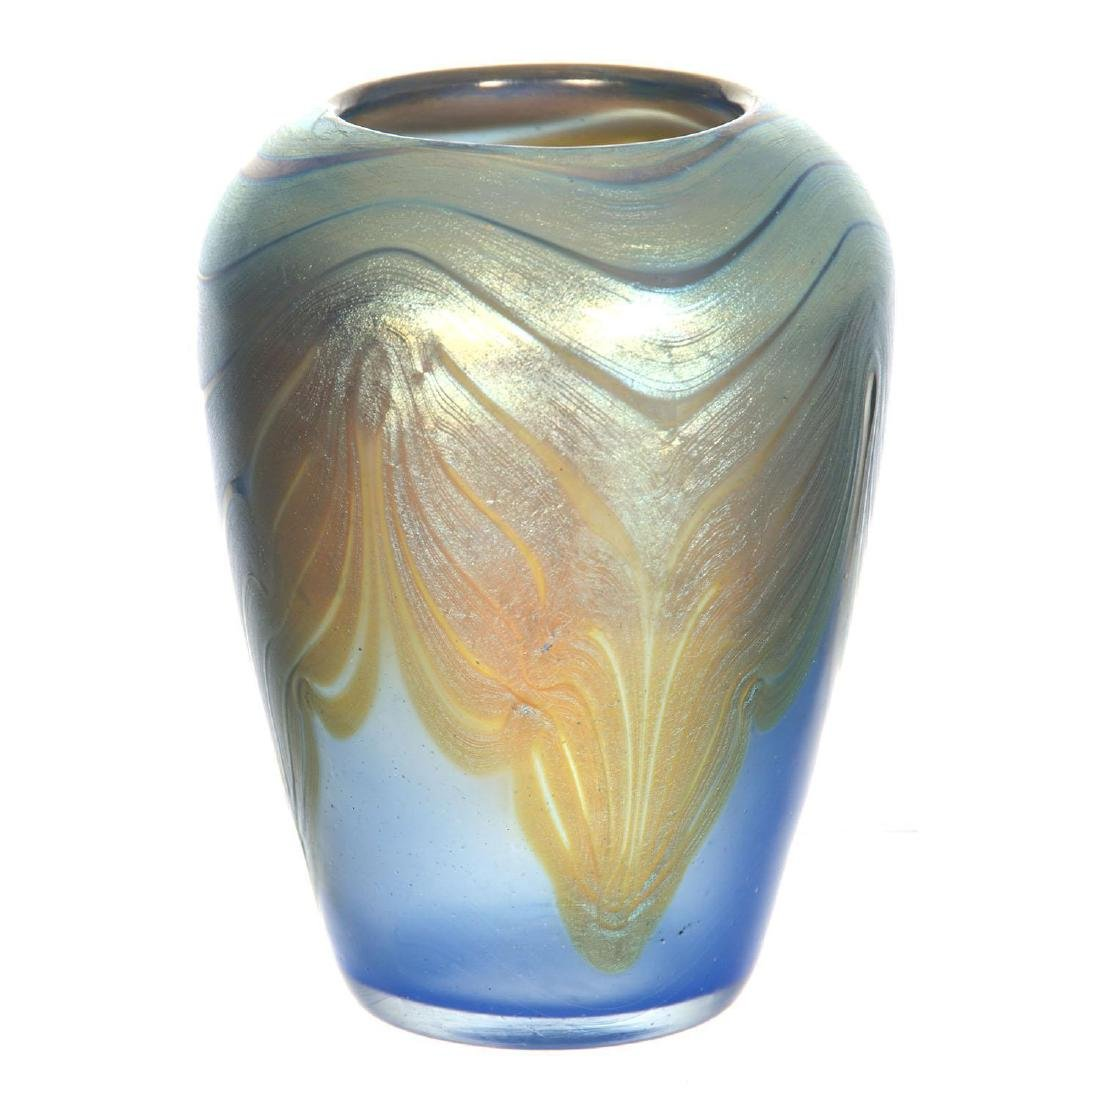 "3.75"" X 2.75"" Signed Loetz Austria Art Glass Vase"